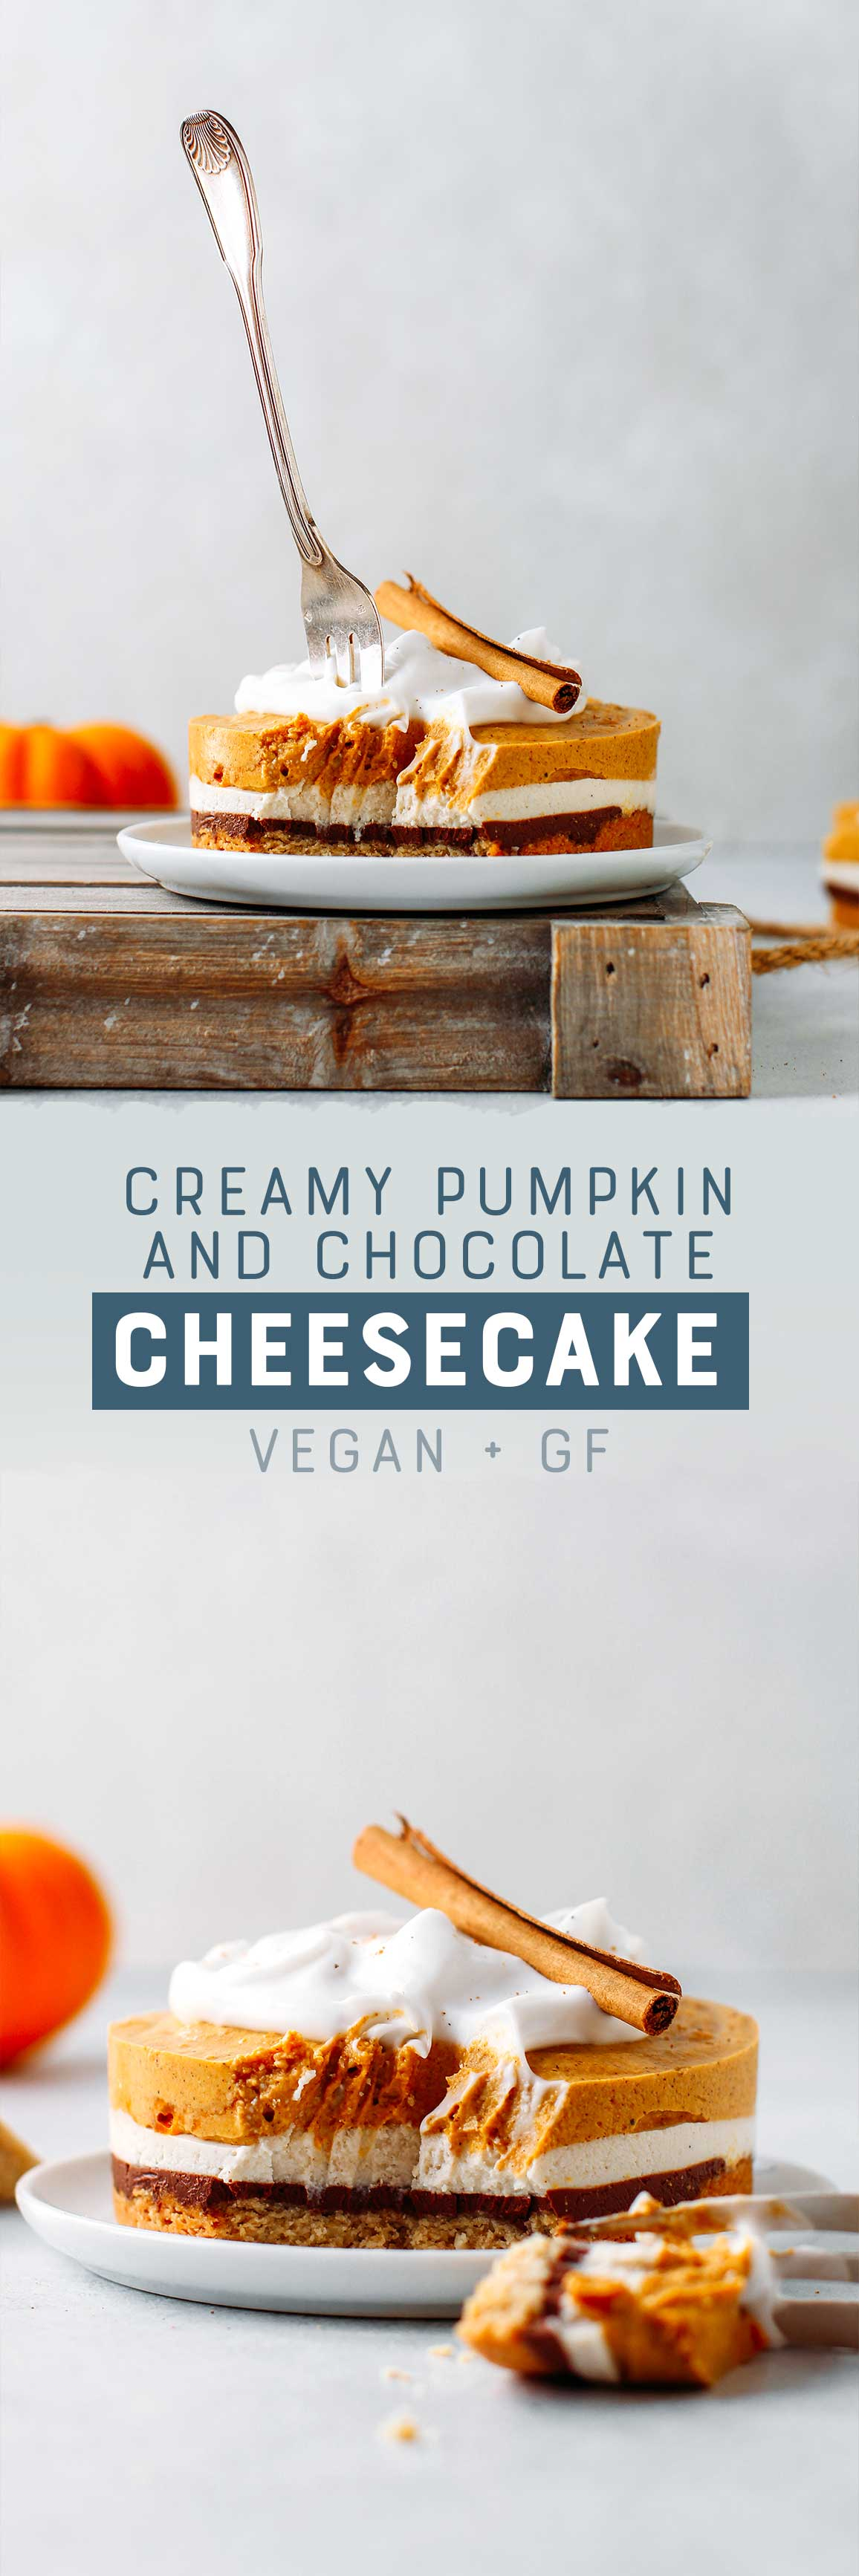 Creamy Pumpkin & Chocolate Cheesecake (Vegan + GF)